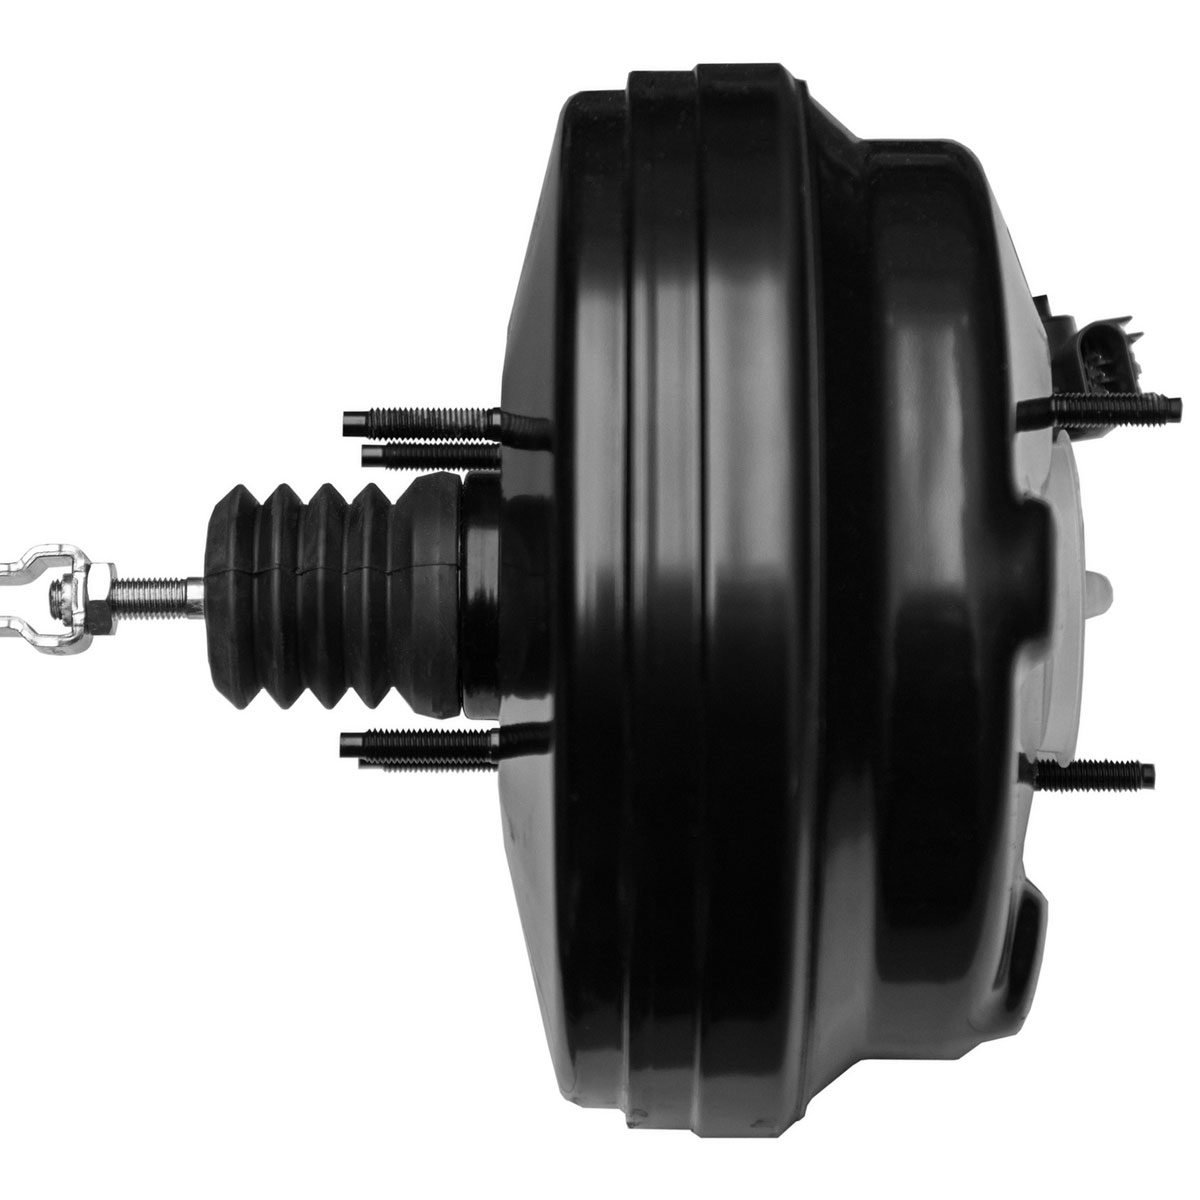 Photo of a brake booster